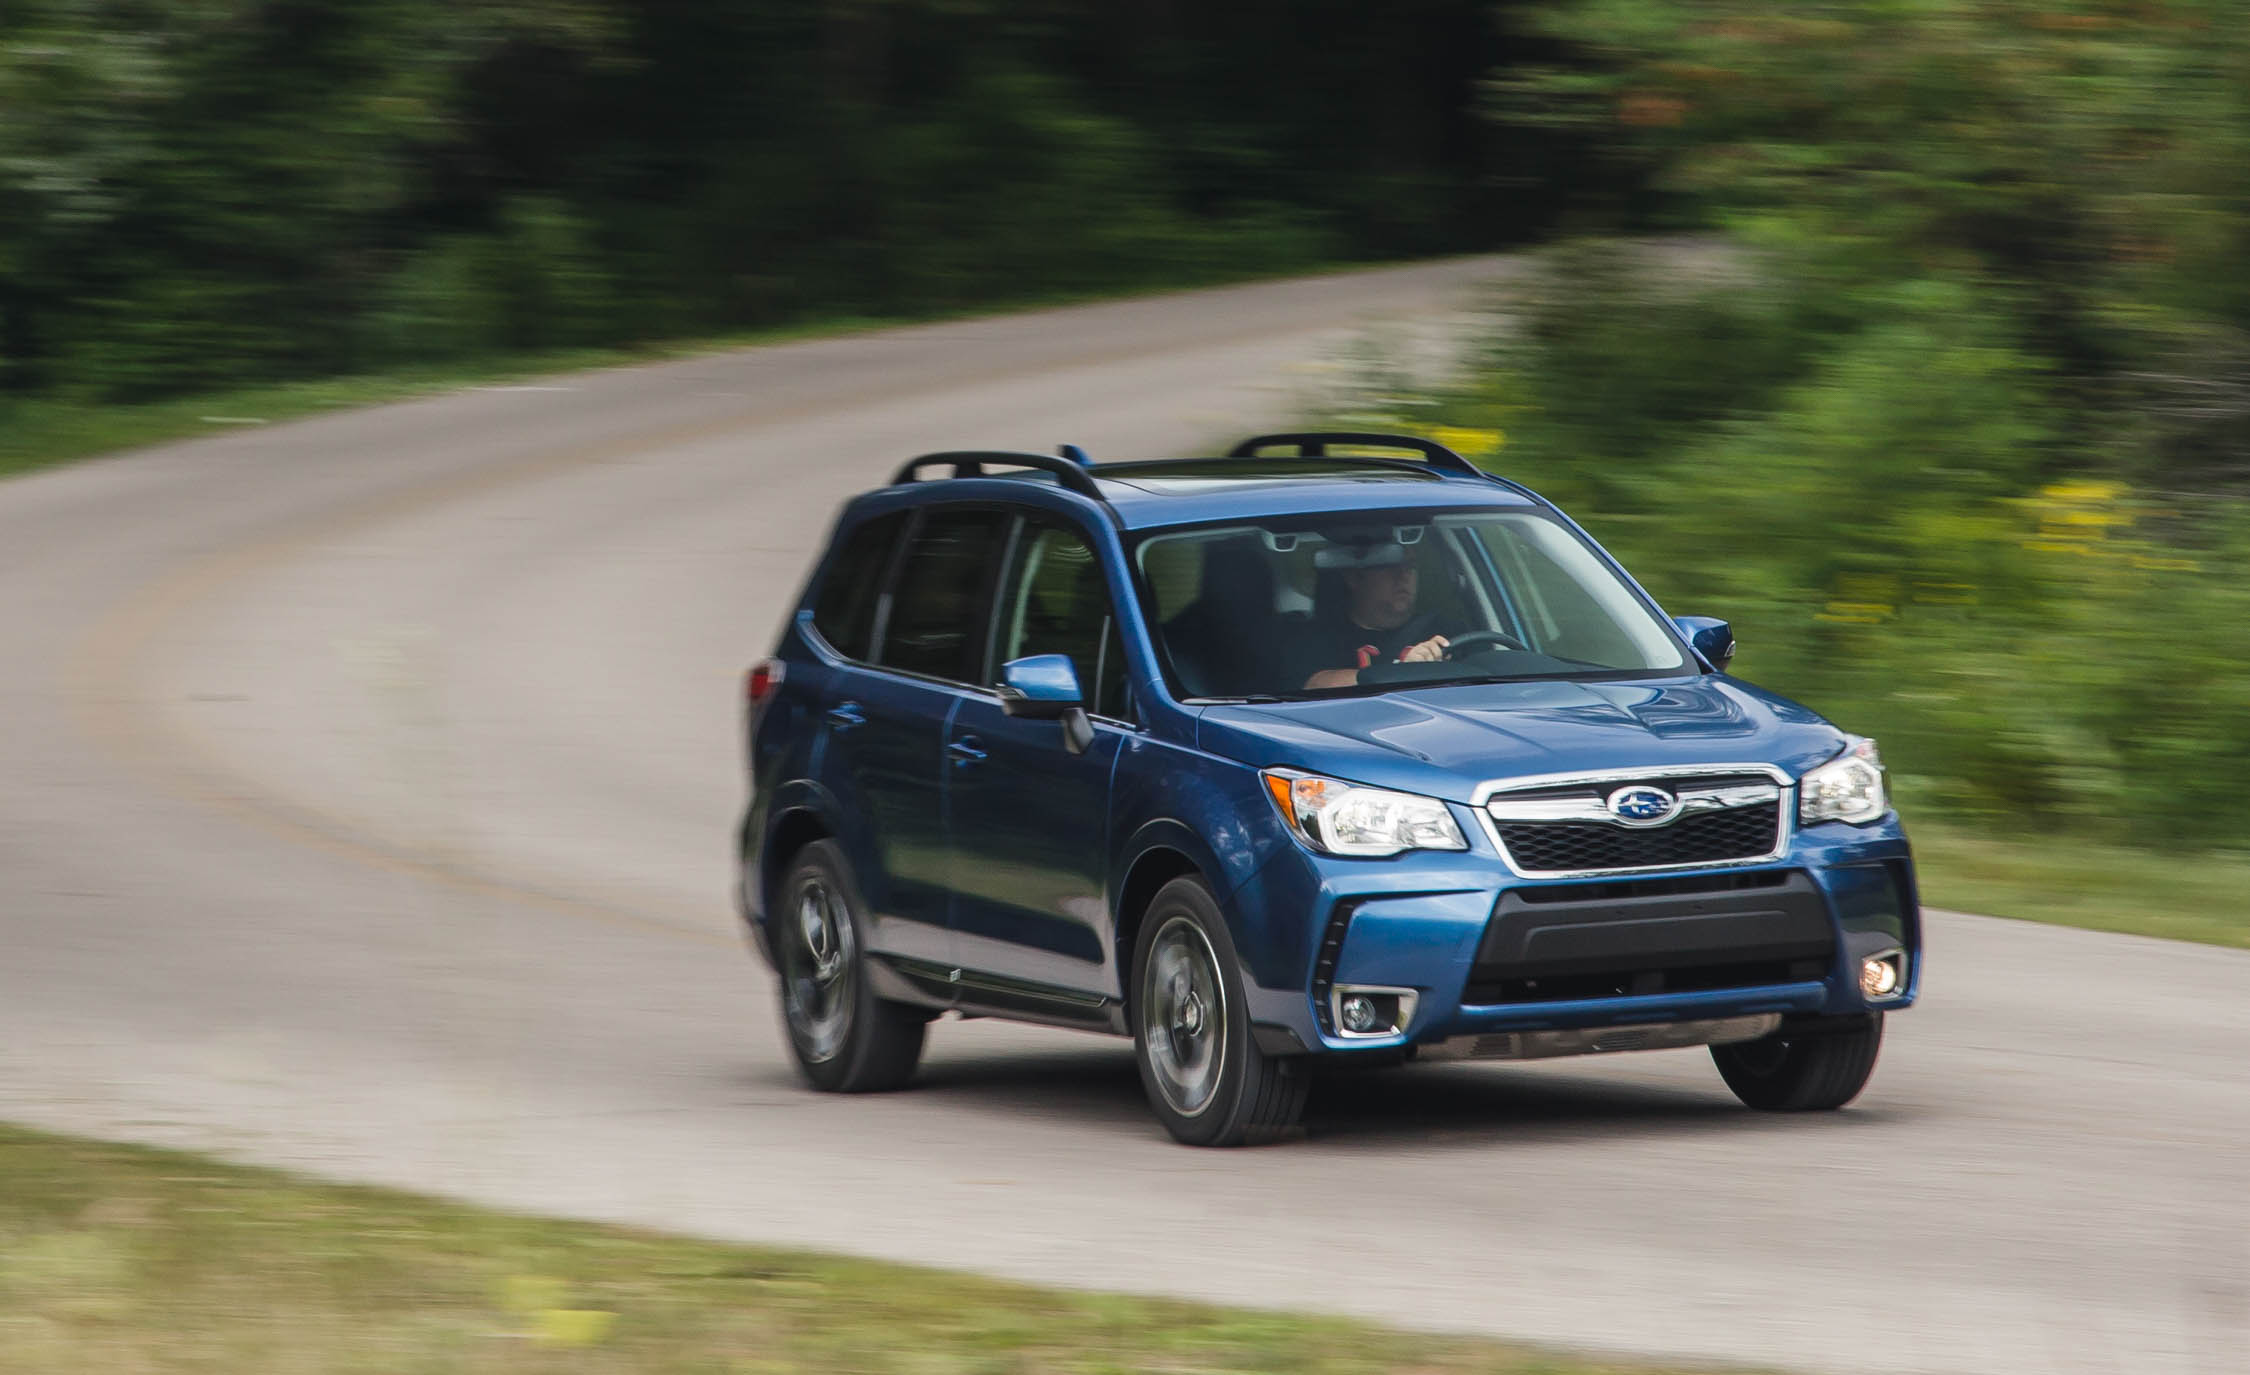 2016 Subaru Forester 2 0xt Touring (View 22 of 29)